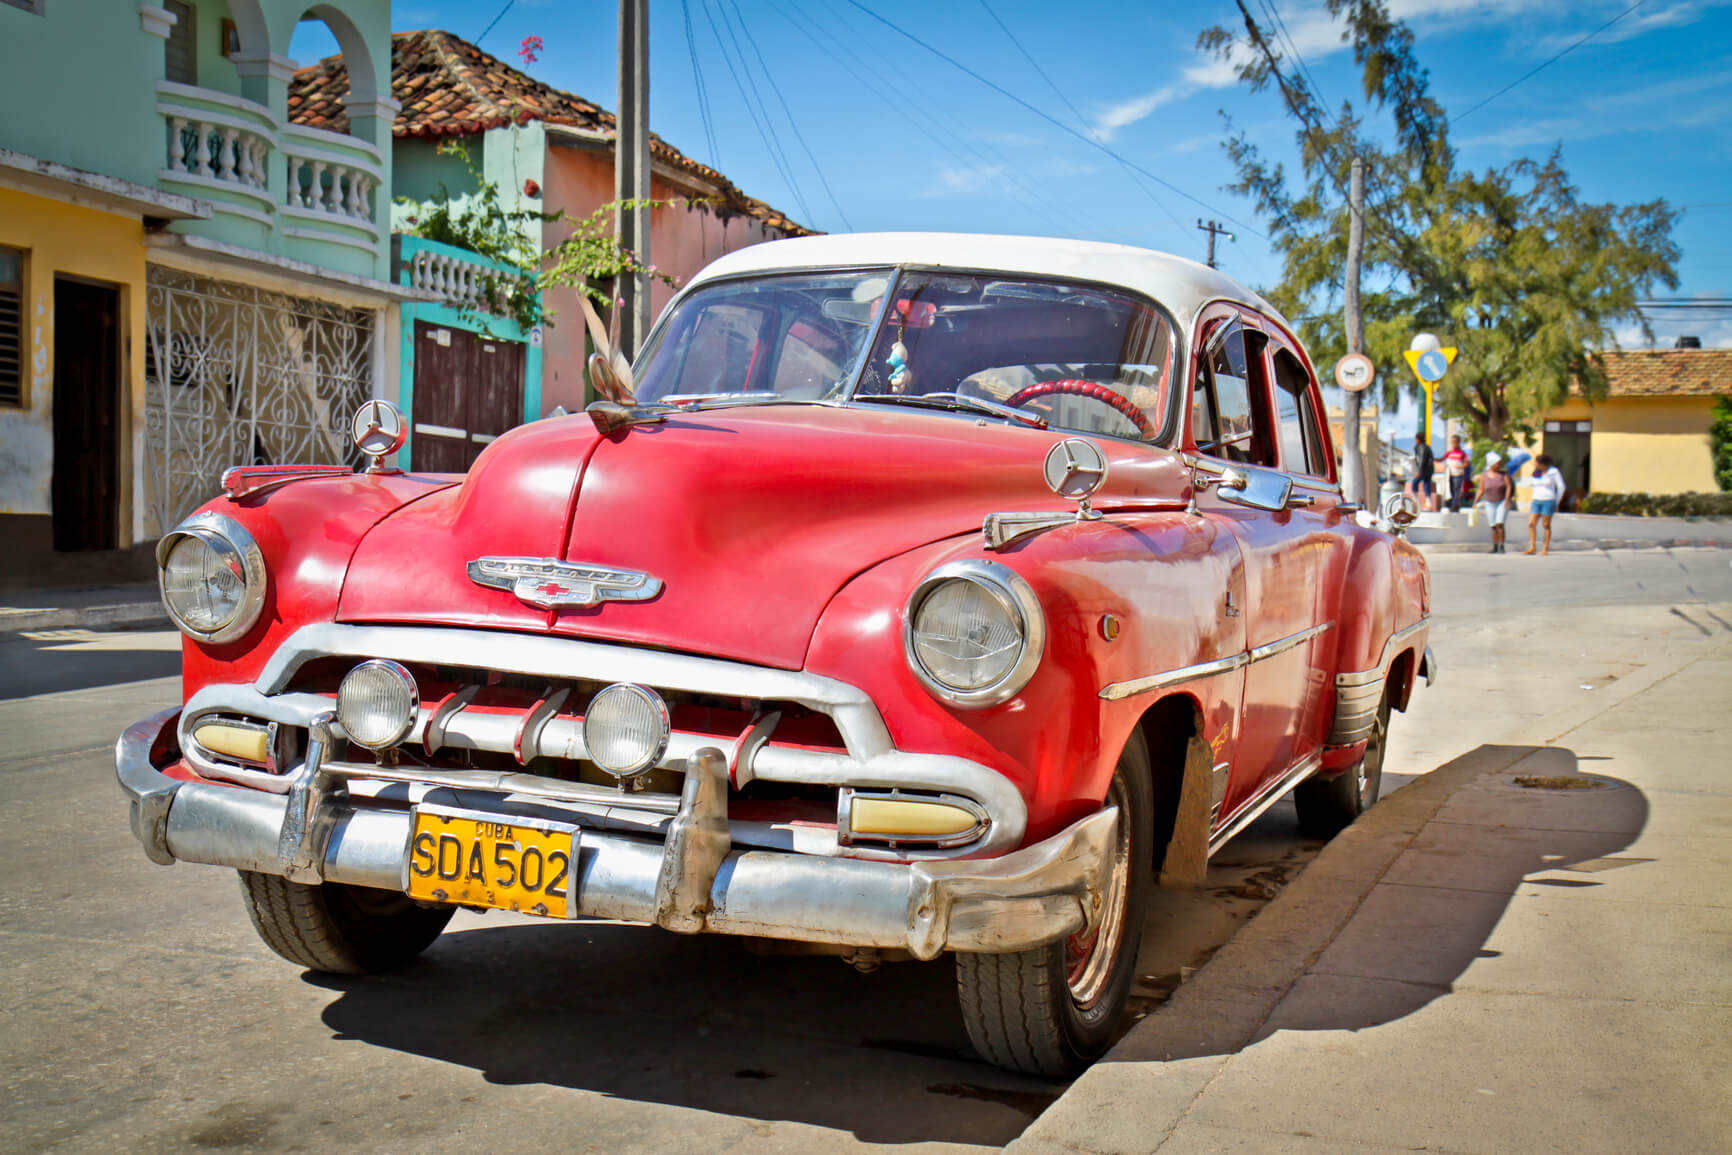 Washington DC to Havana, Cuba for only $297 roundtrip